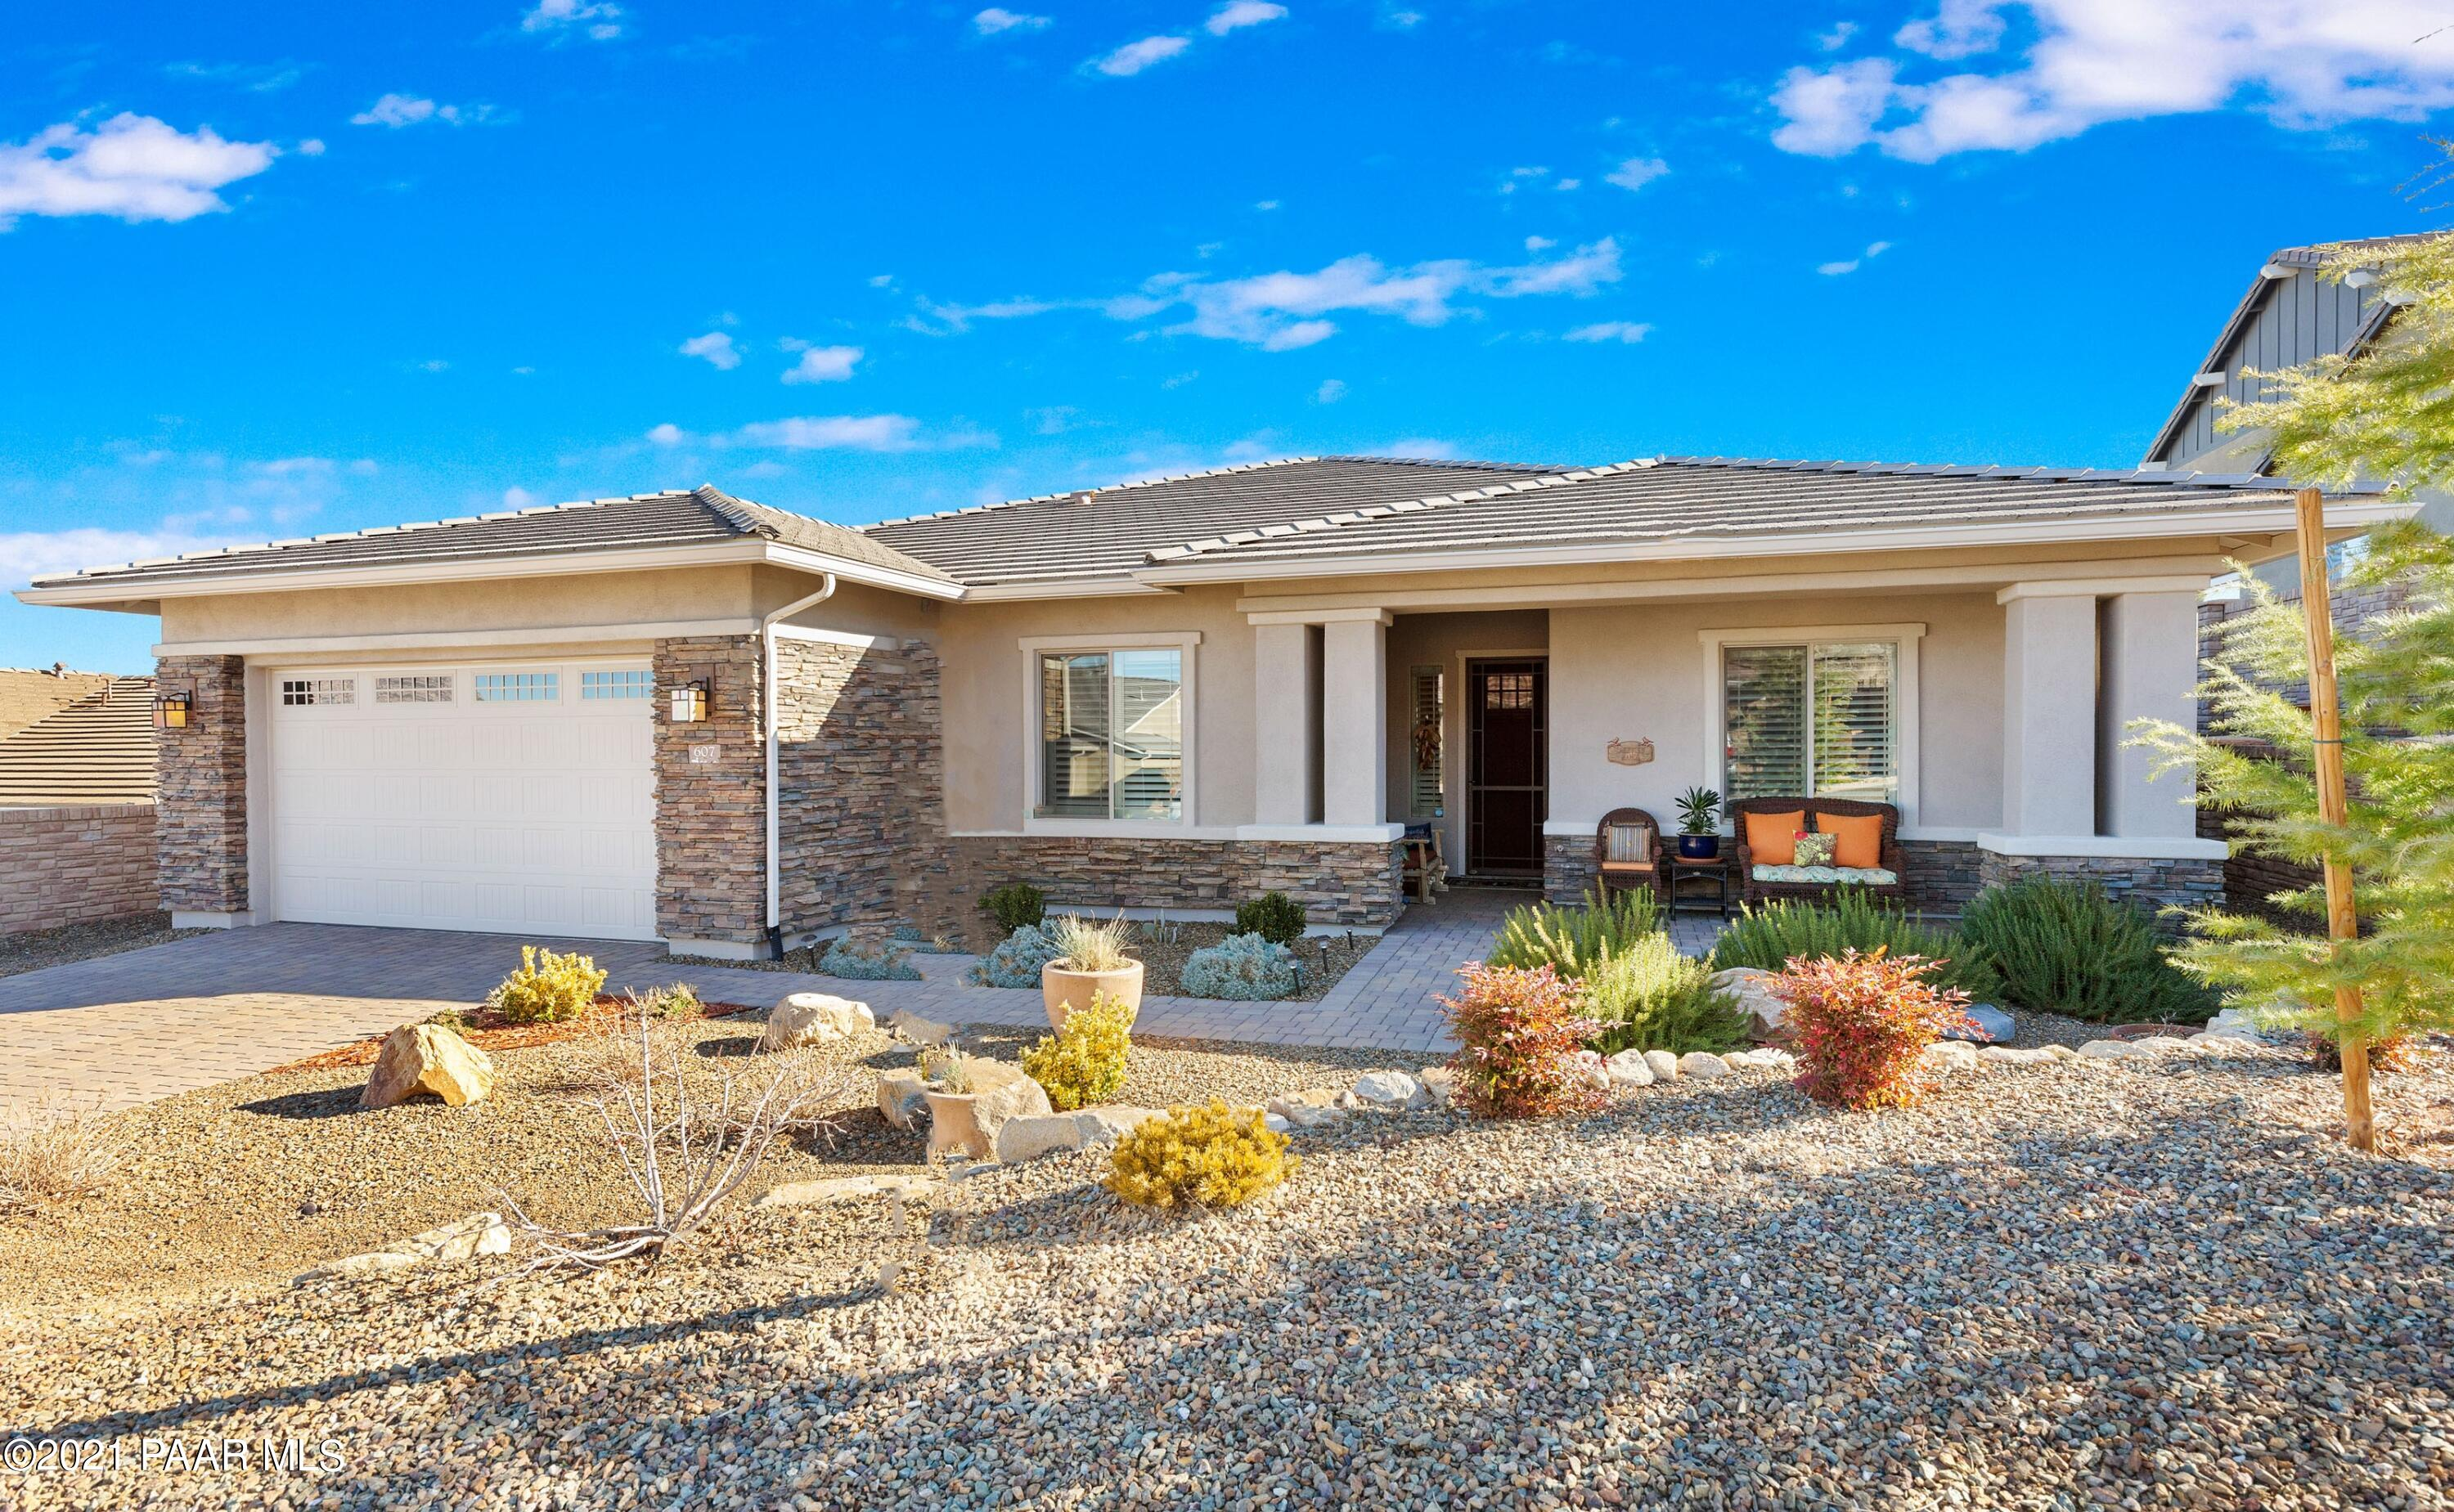 Photo of 607 St Enodoc, Prescott, AZ 86301